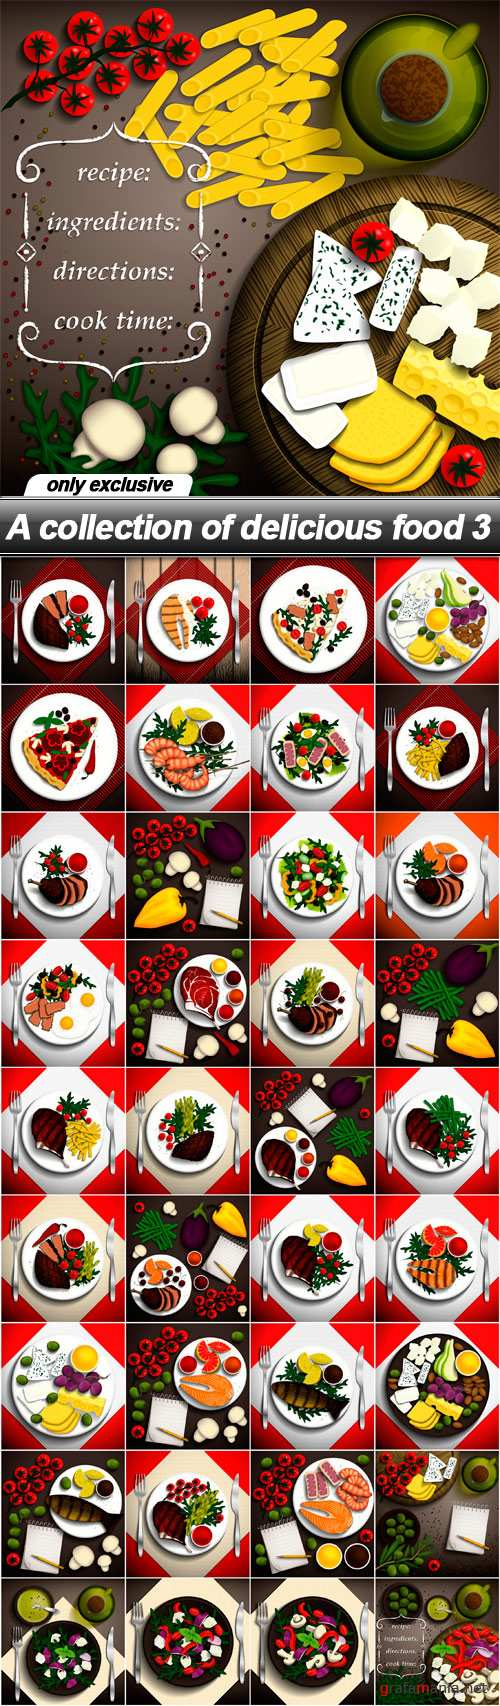 A collection of delicious food 3